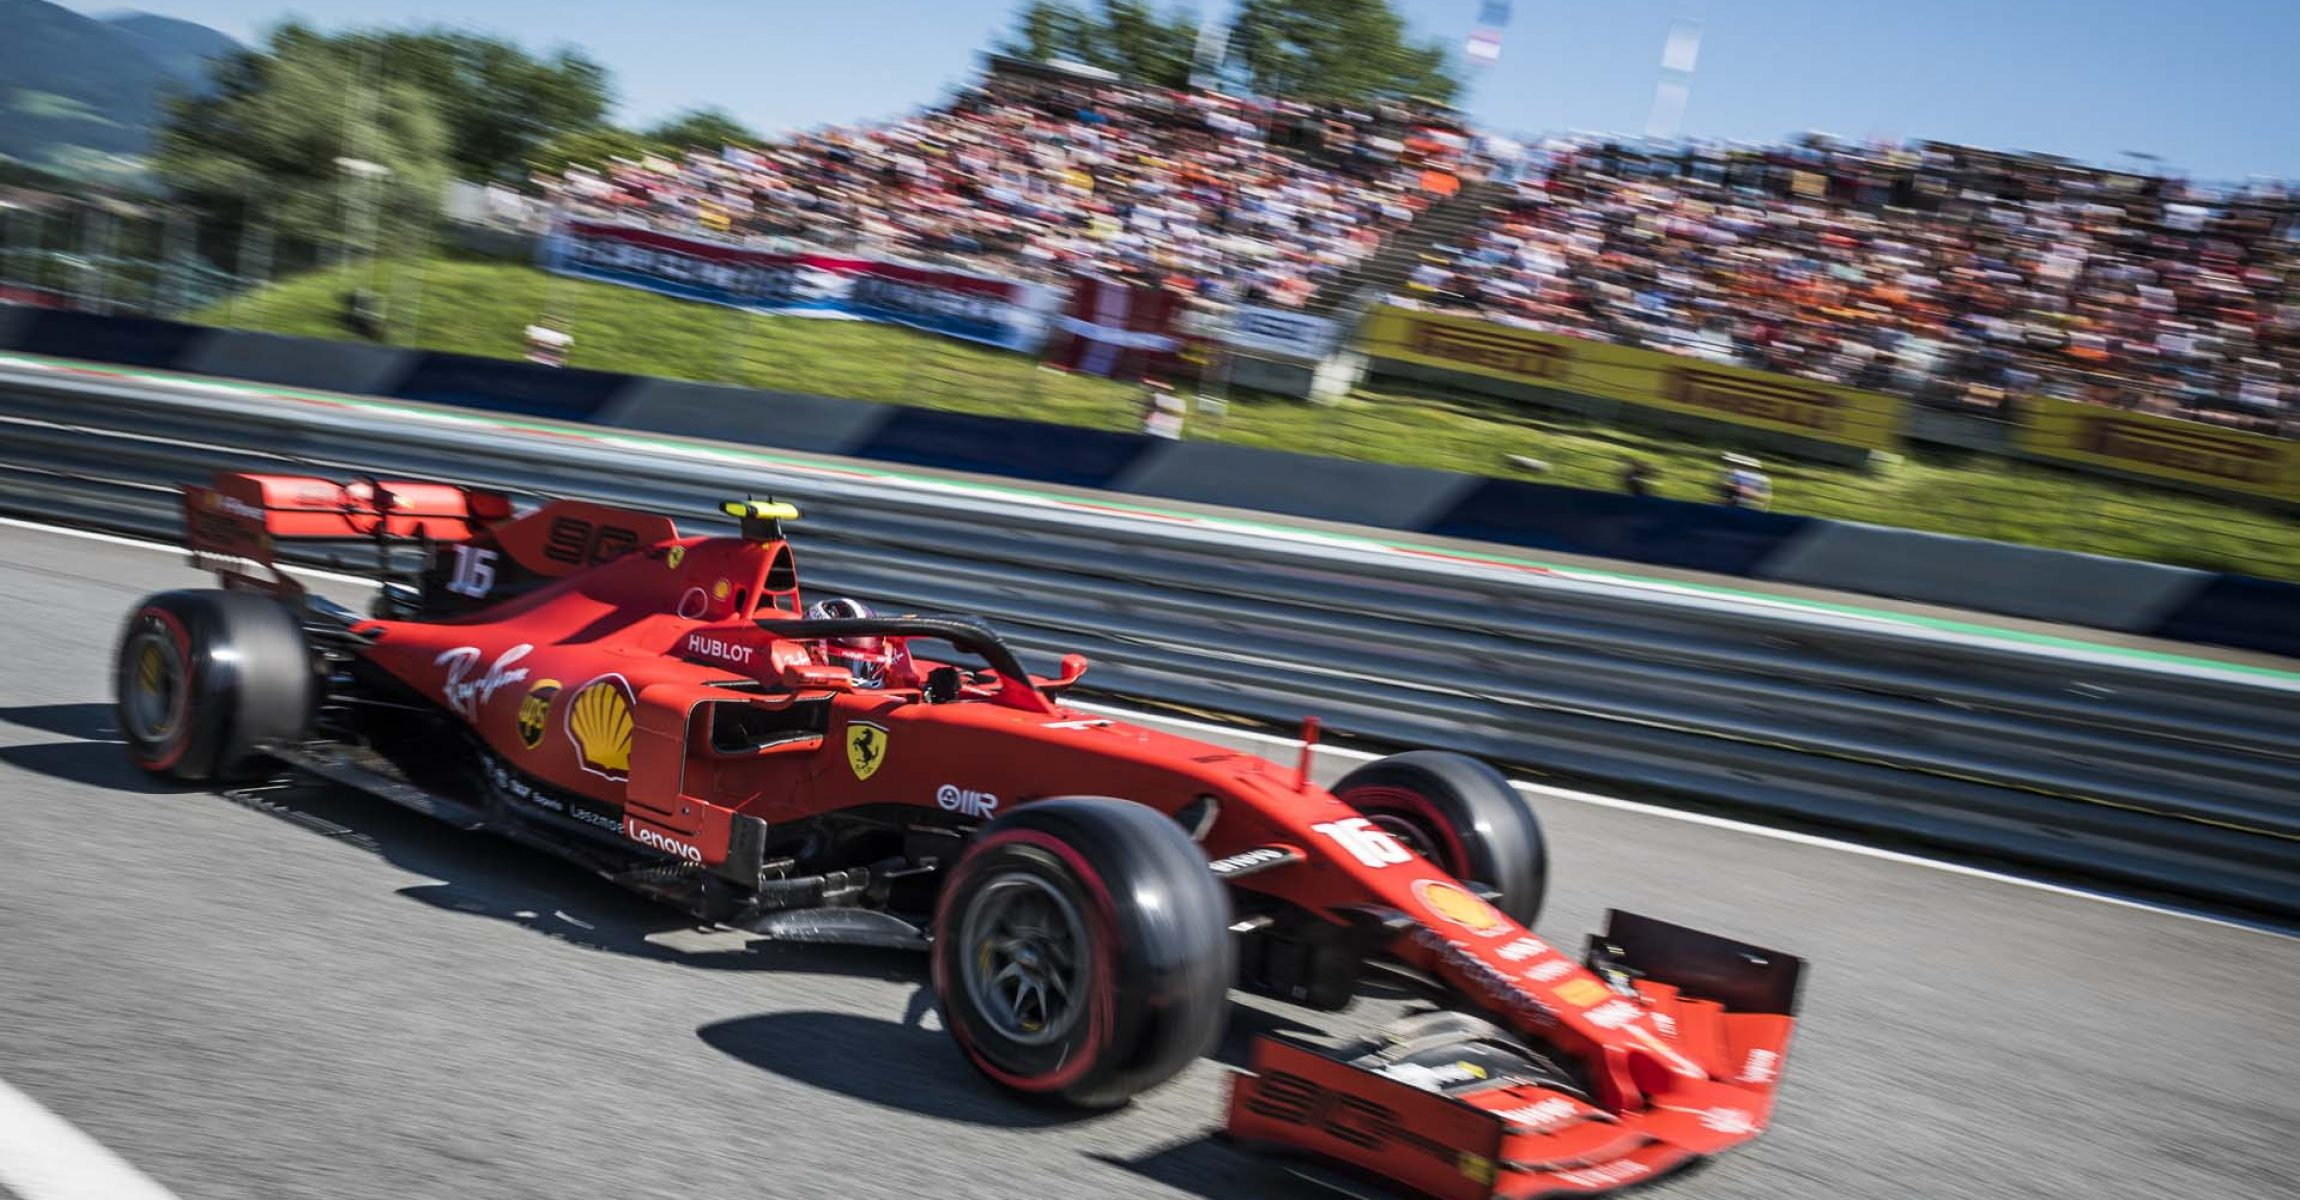 Charles Leclerc races at the FIA Formula One World Championship 2019 in Spielberg, Austria on June 29, 2019 // Philip Platzer/Red Bull Content Pool // AP-1ZSYE1RKS1W11 // Usage for editorial use only // Please go to www.redbullcontentpool.com for further information. //